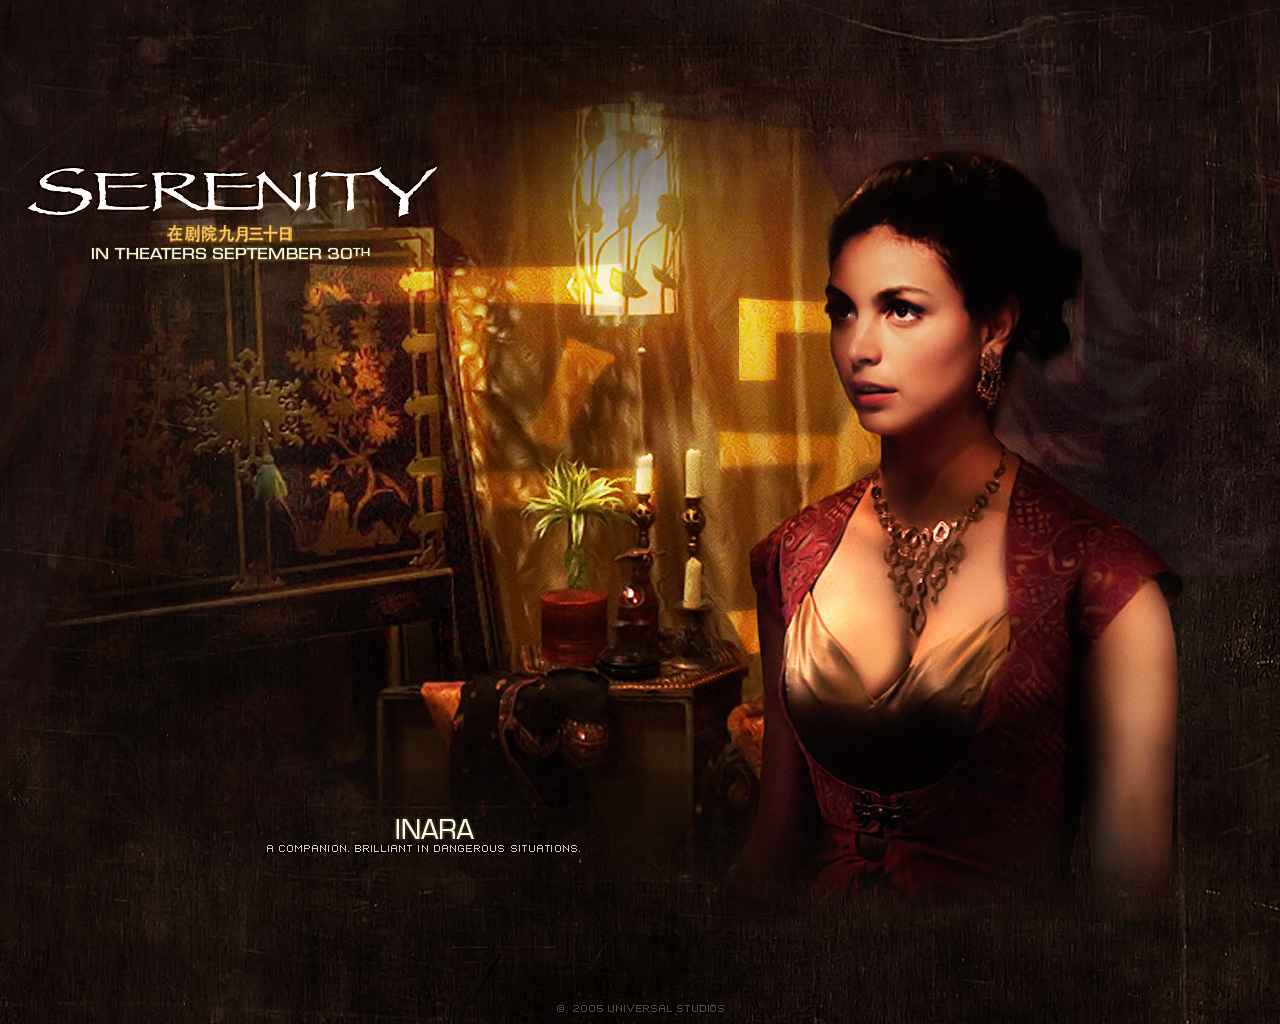 firefly serenity wallpaper table 3 - photo #7